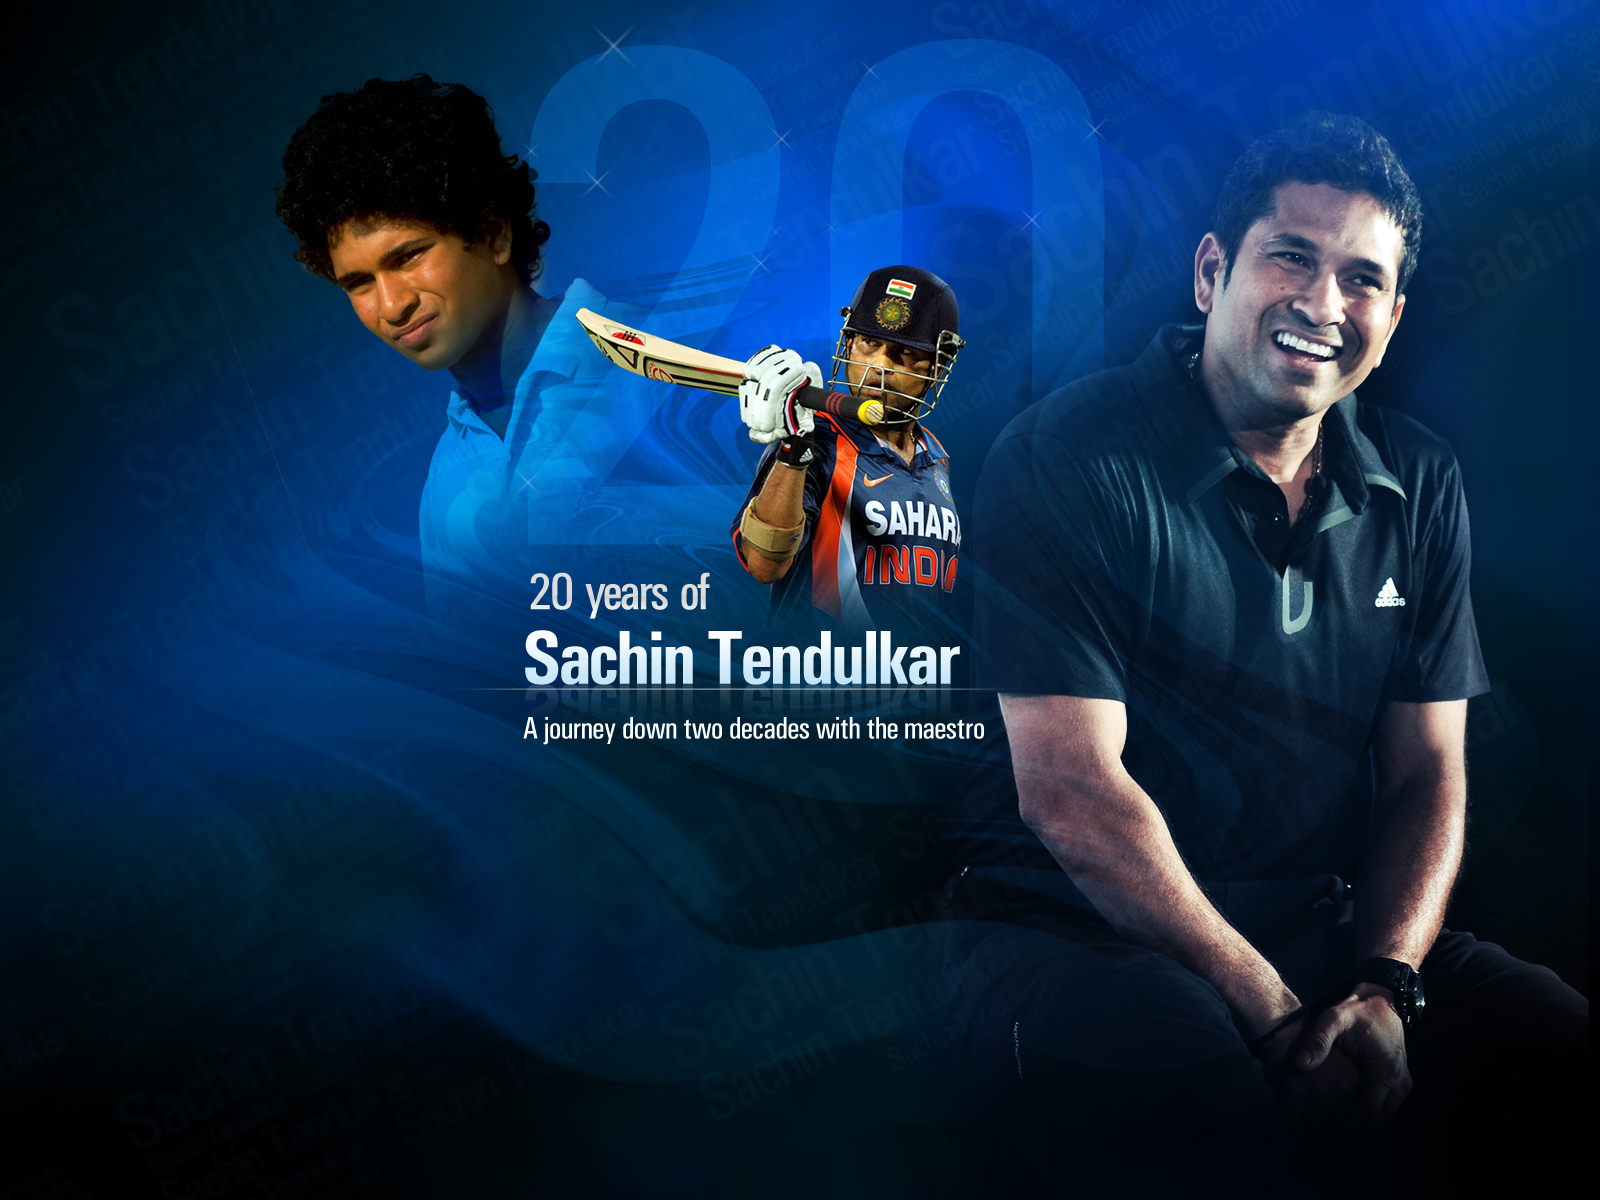 sachin tendulkar wallpapers desktop | sports wallpaper